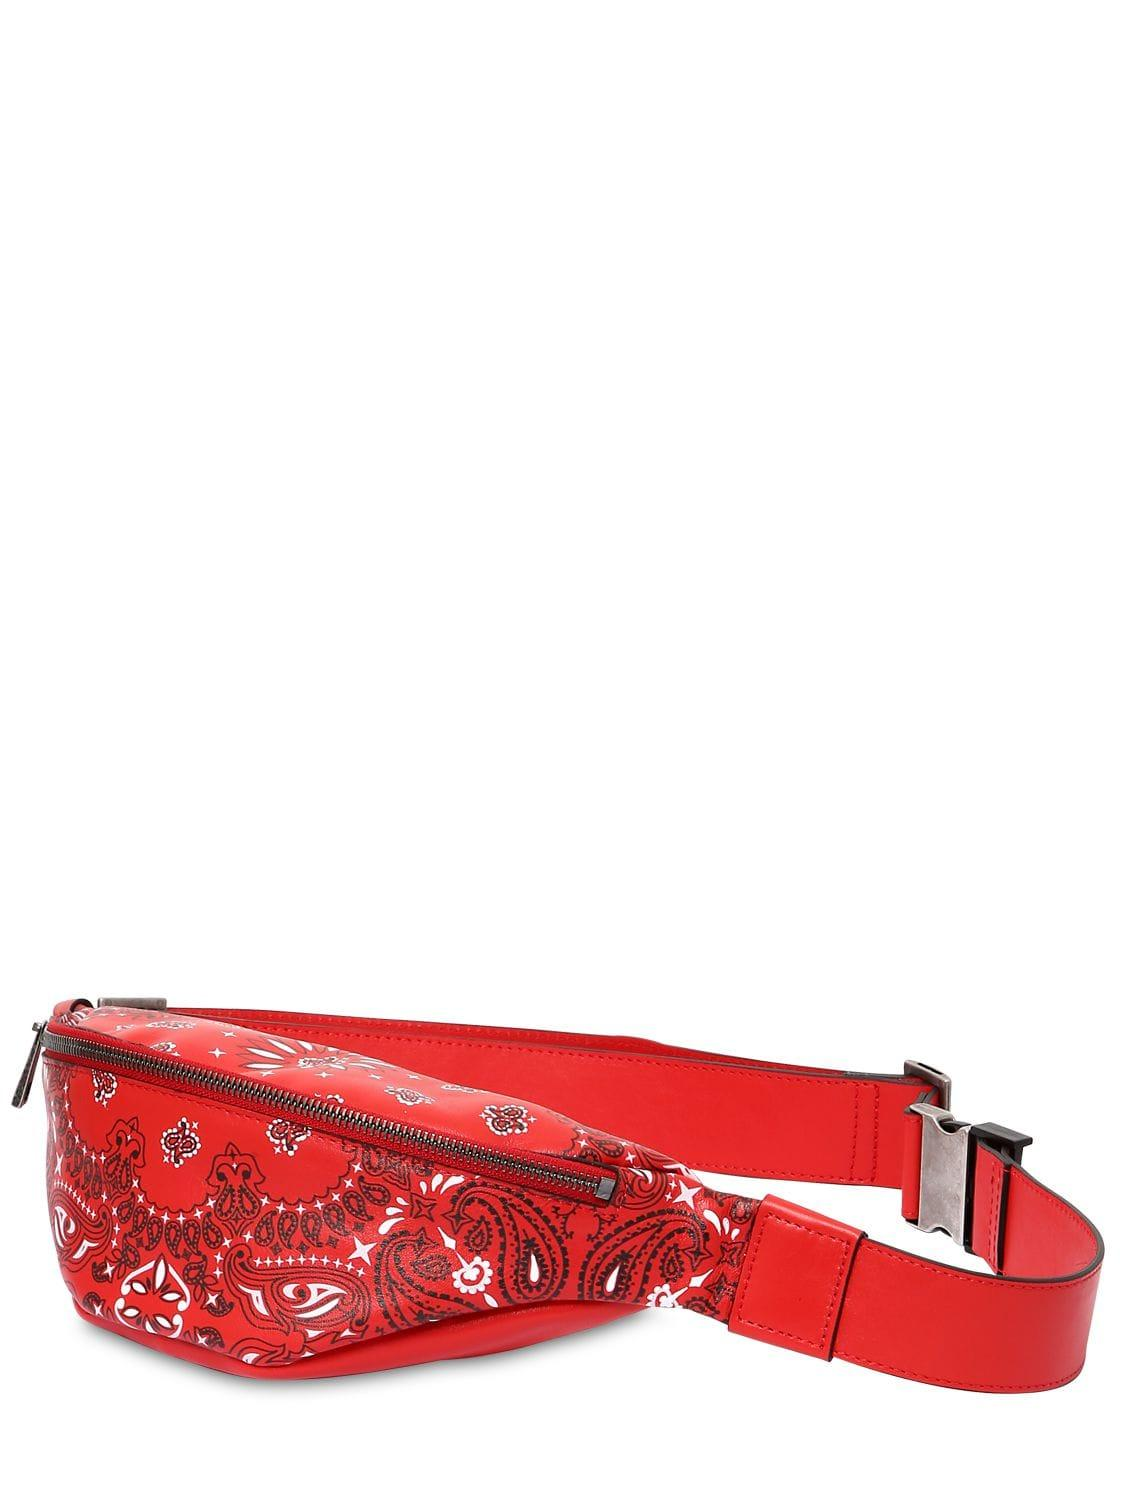 cc1a0b0414 Men's Red Bandana Print Leather Belt Bag